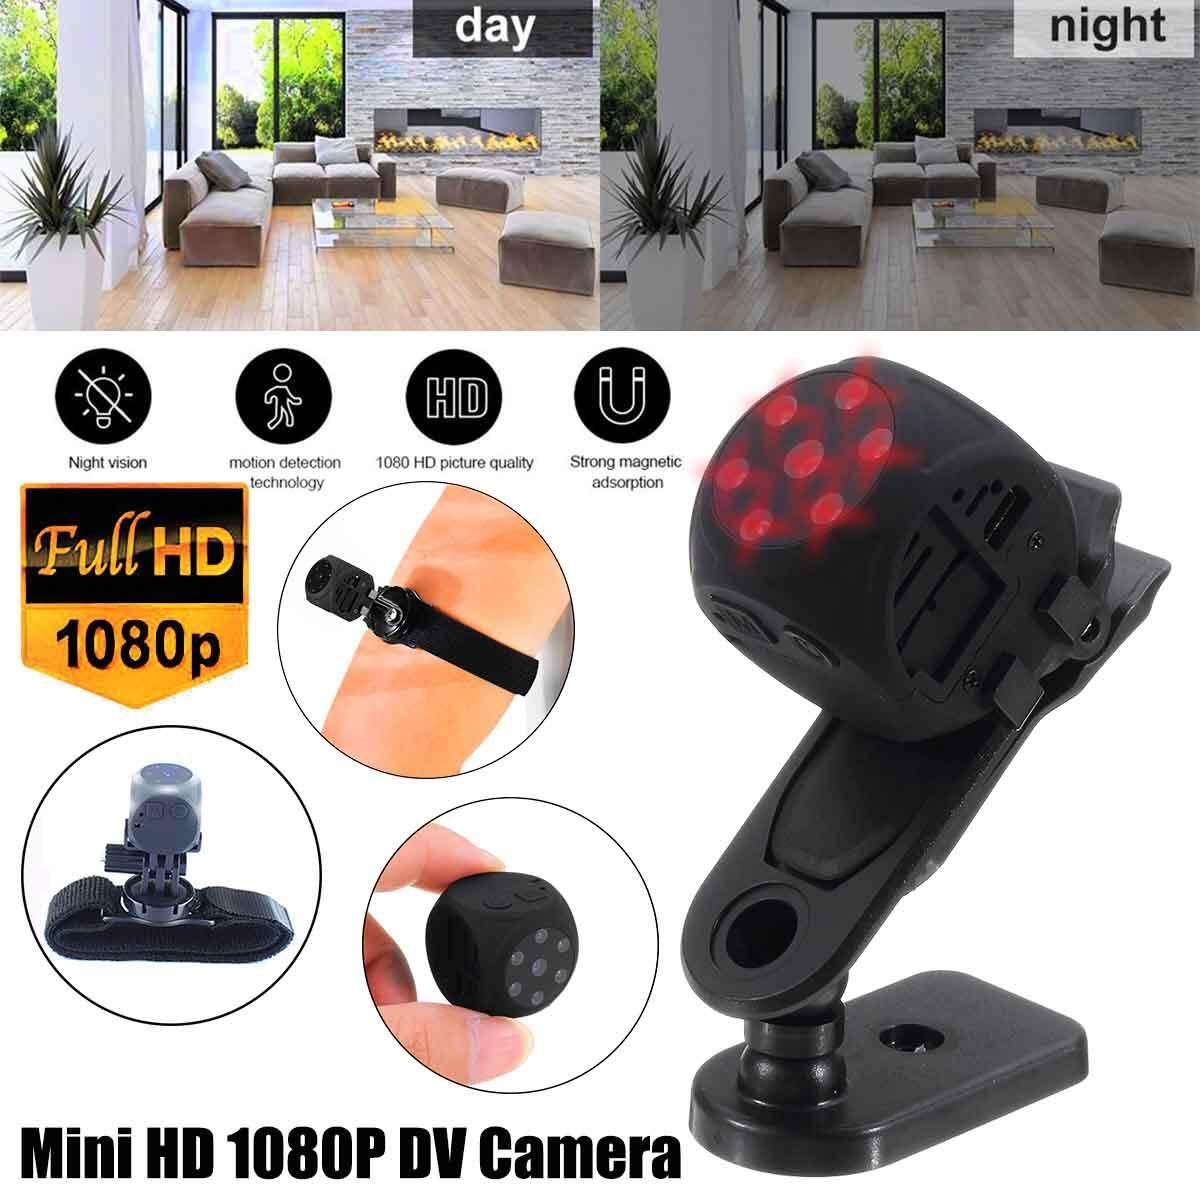 Intelligent Mini HD 1080P DV Camera Motion Detecting Infrared Night Vision Black